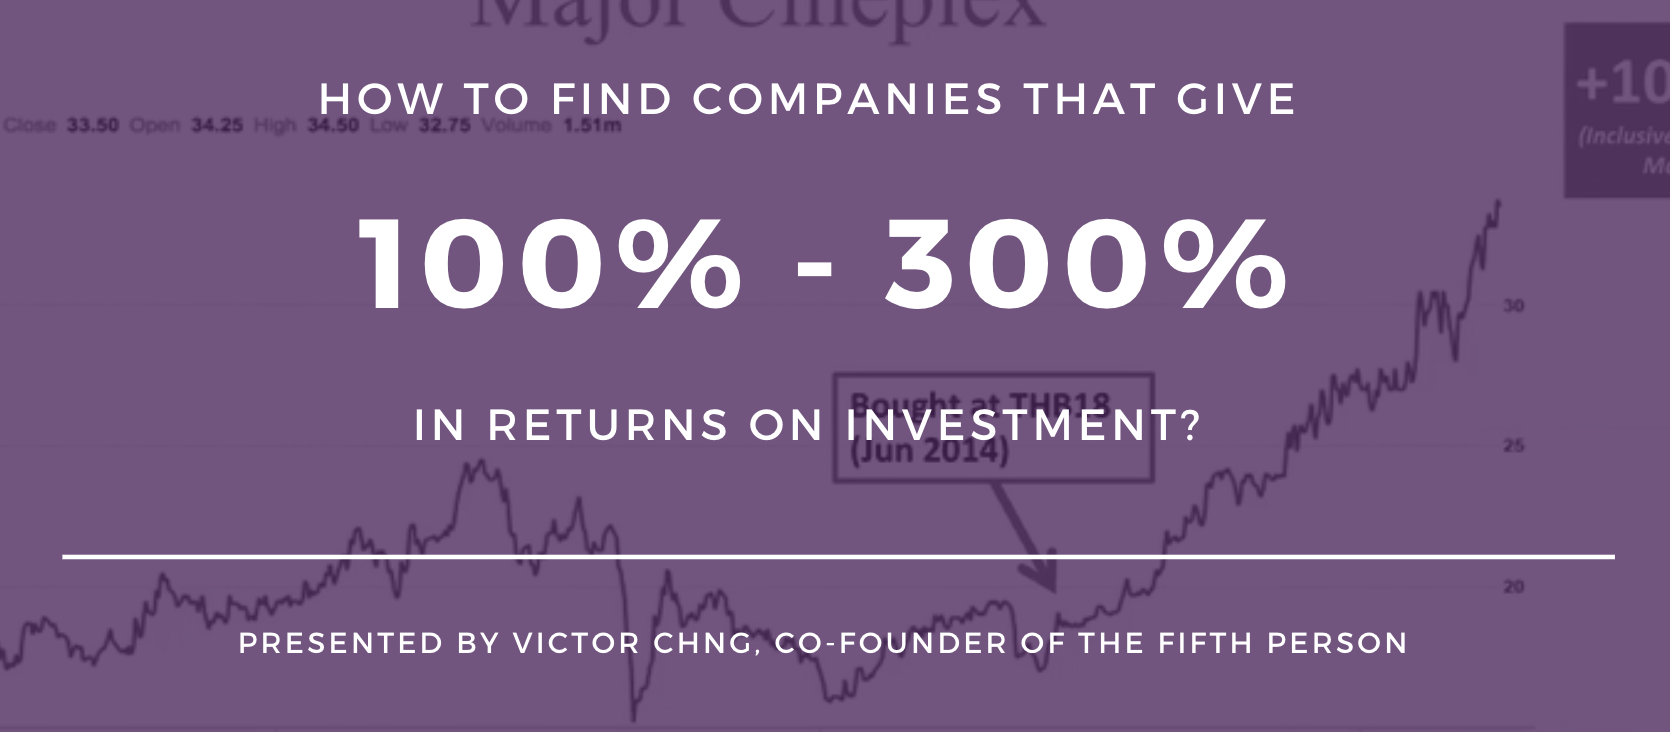 How to Find Companies that Give You 100% – 300% Returns on Your Investment?